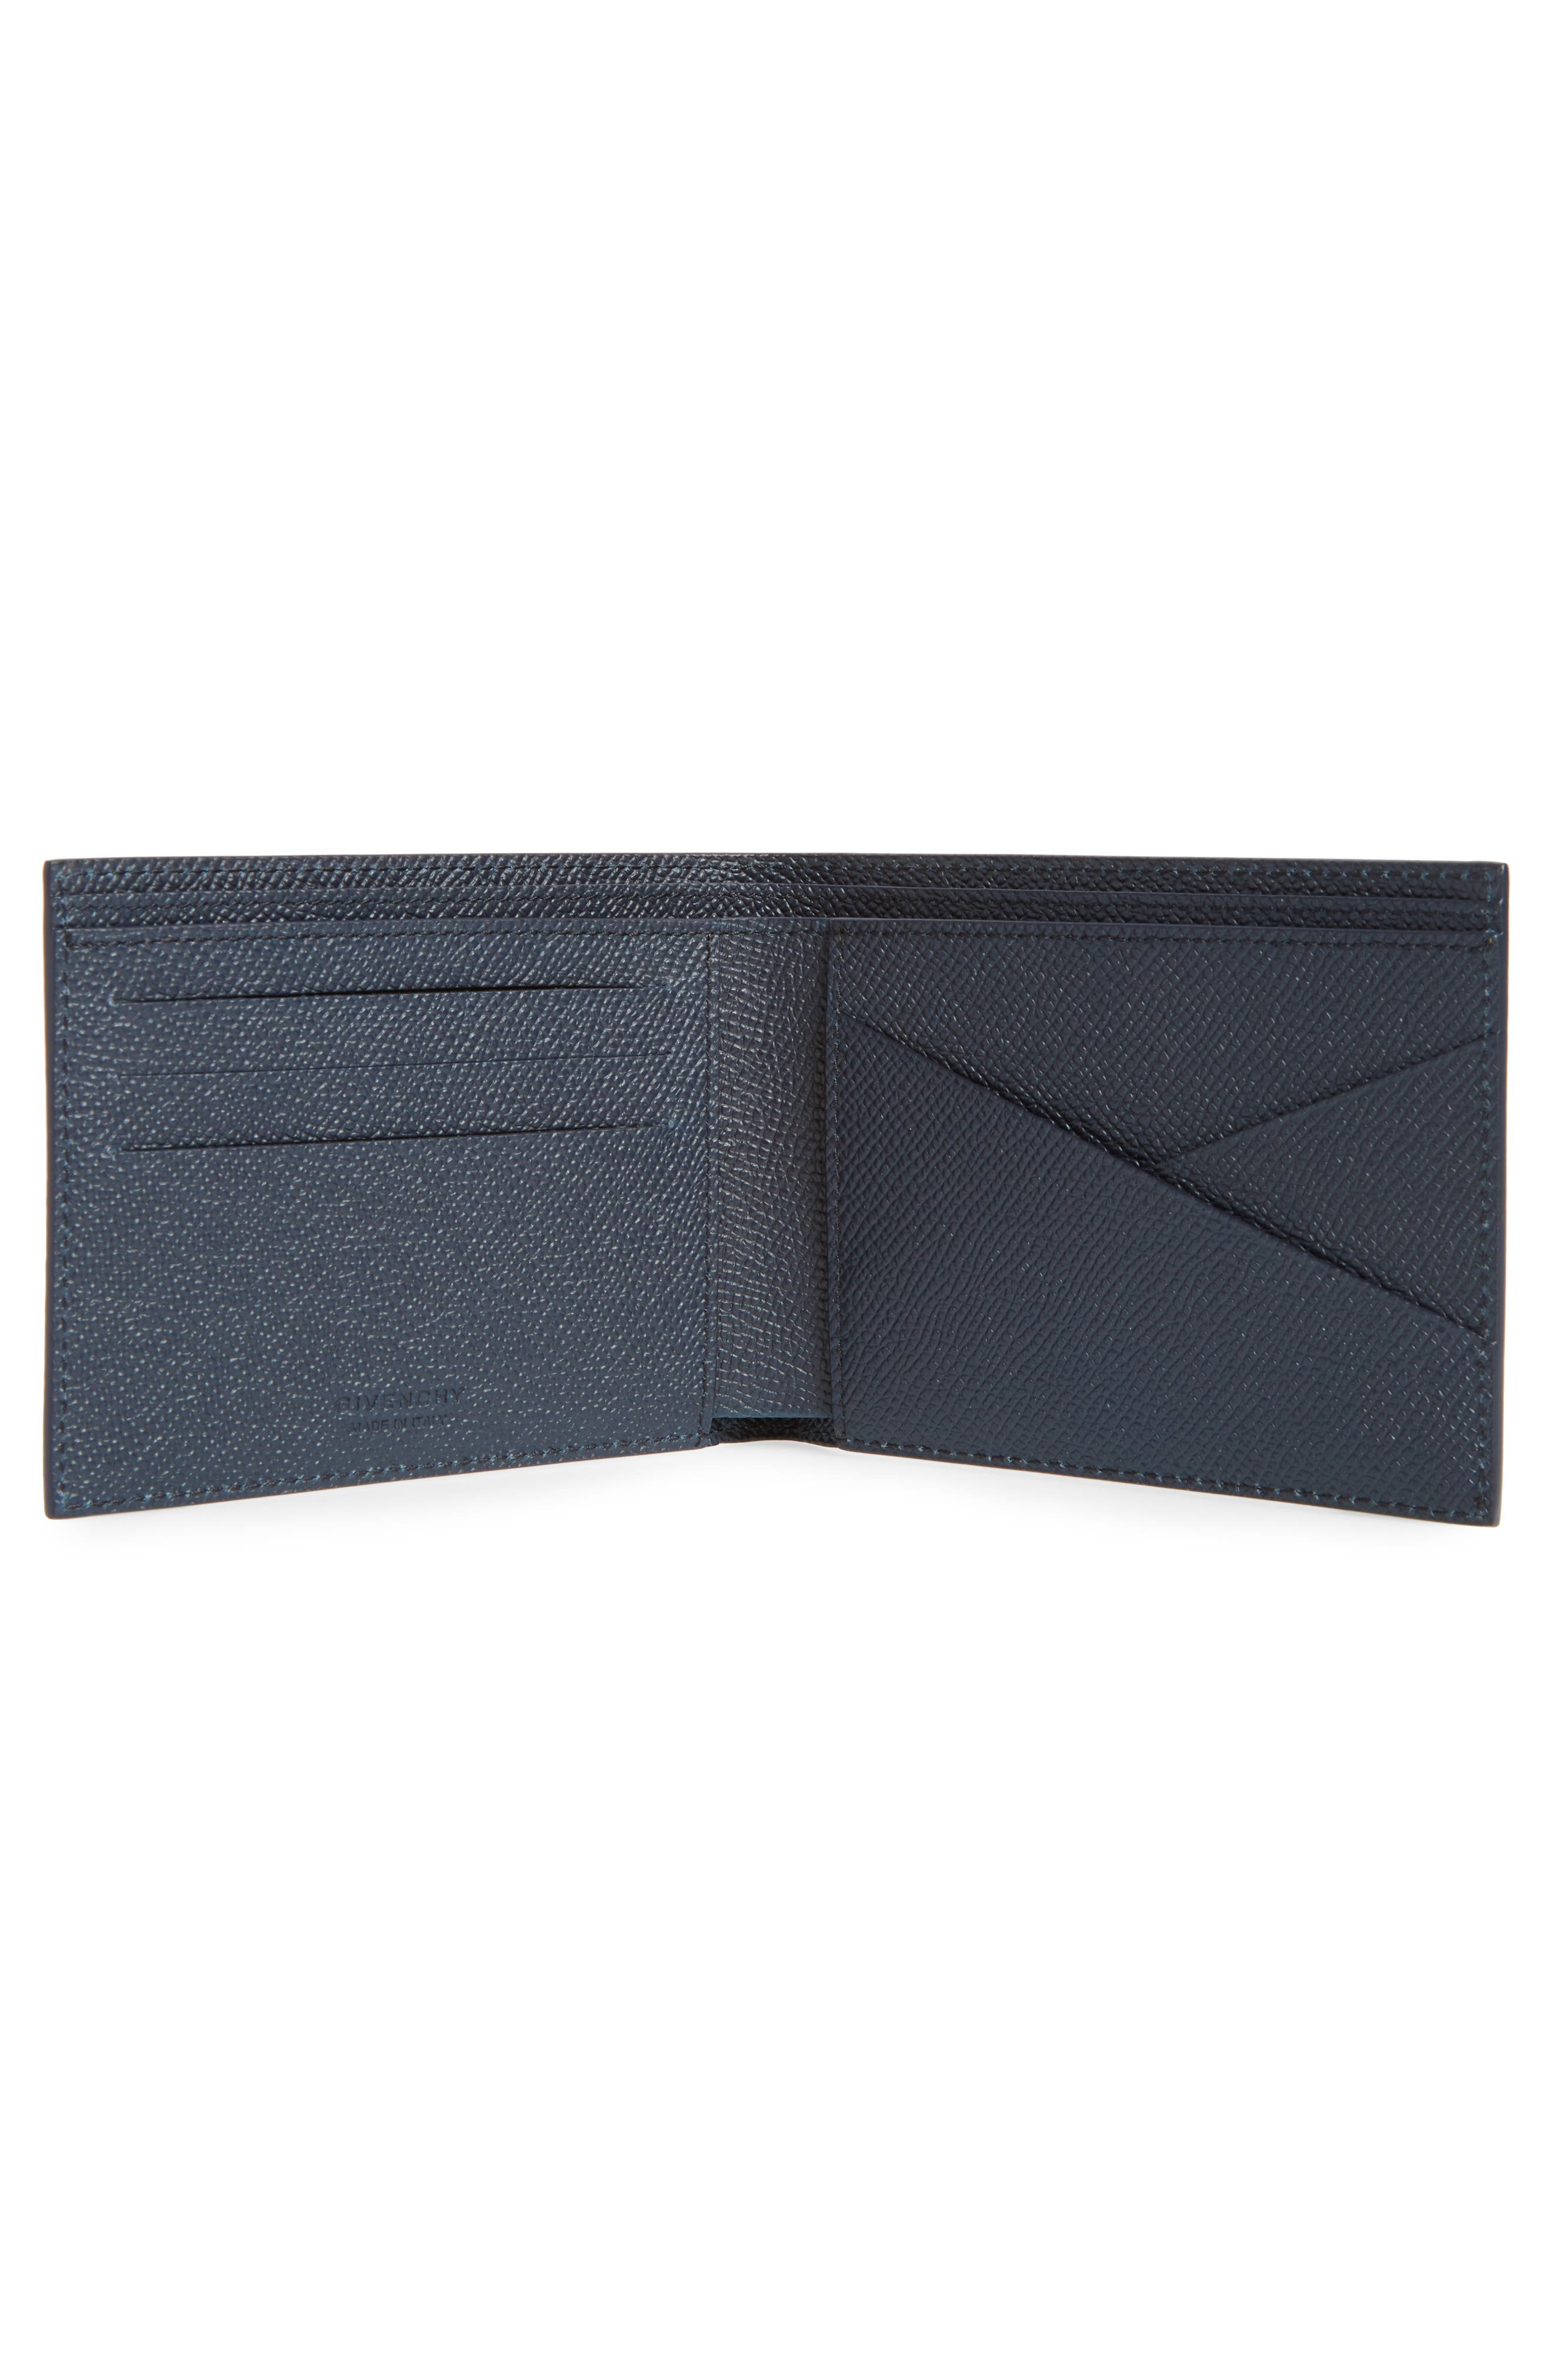 Alternate Image 2  - Givenchy Eros Textured Leather Wallet